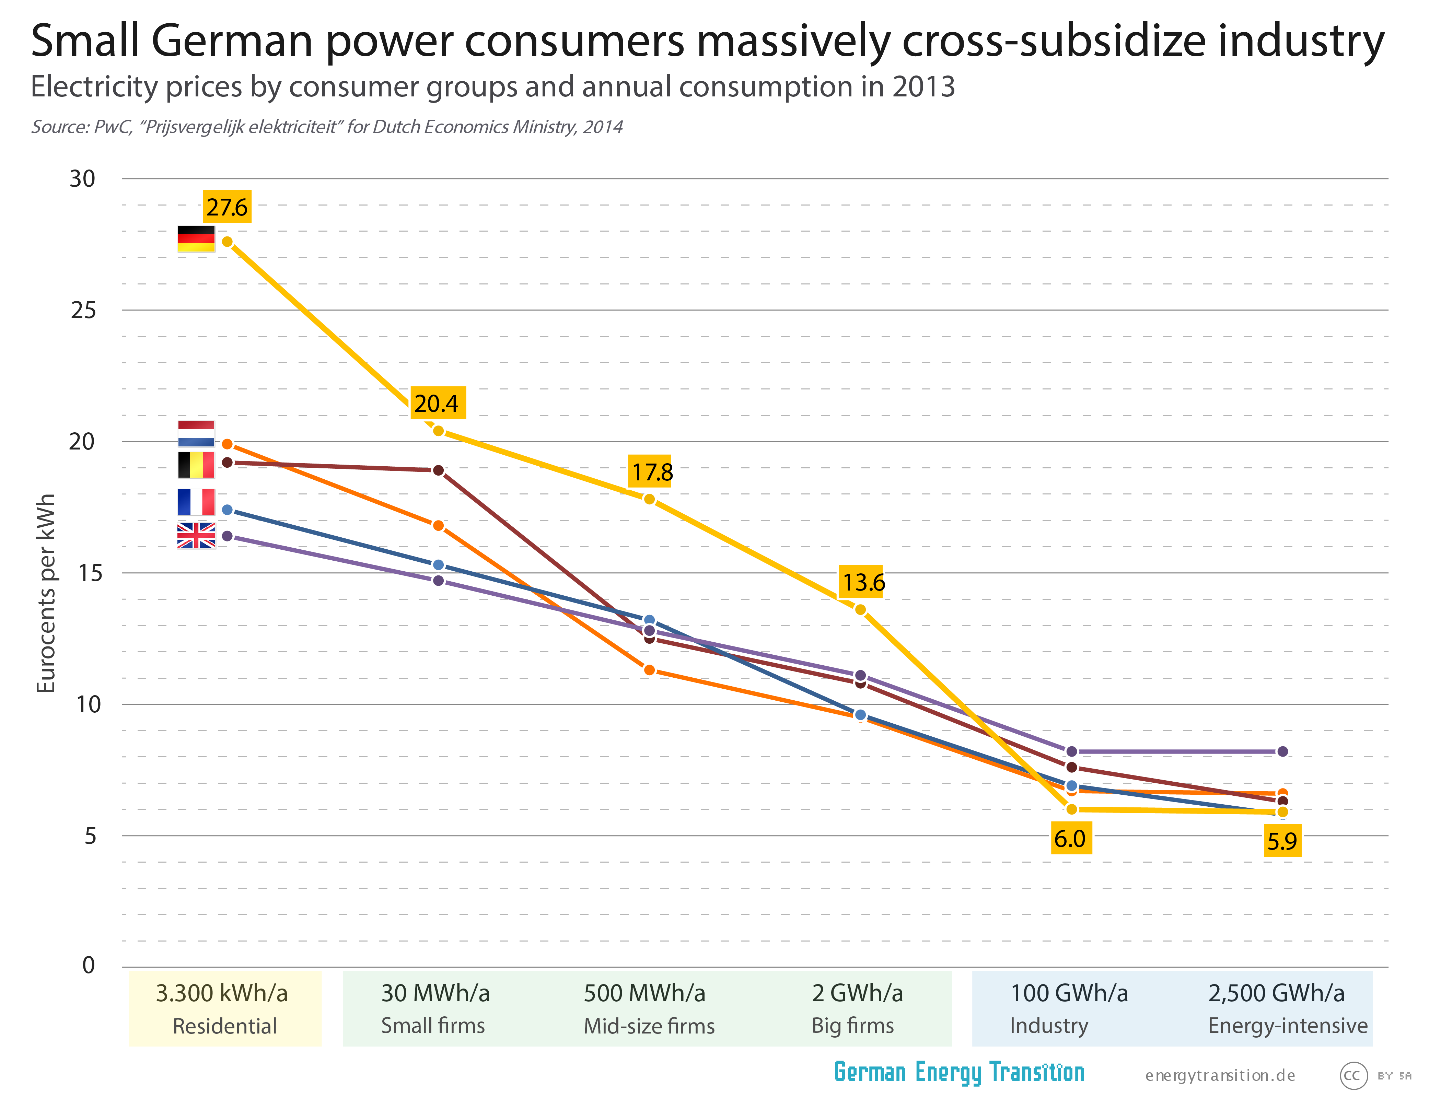 Small German consumers massively cross-subsidize industry